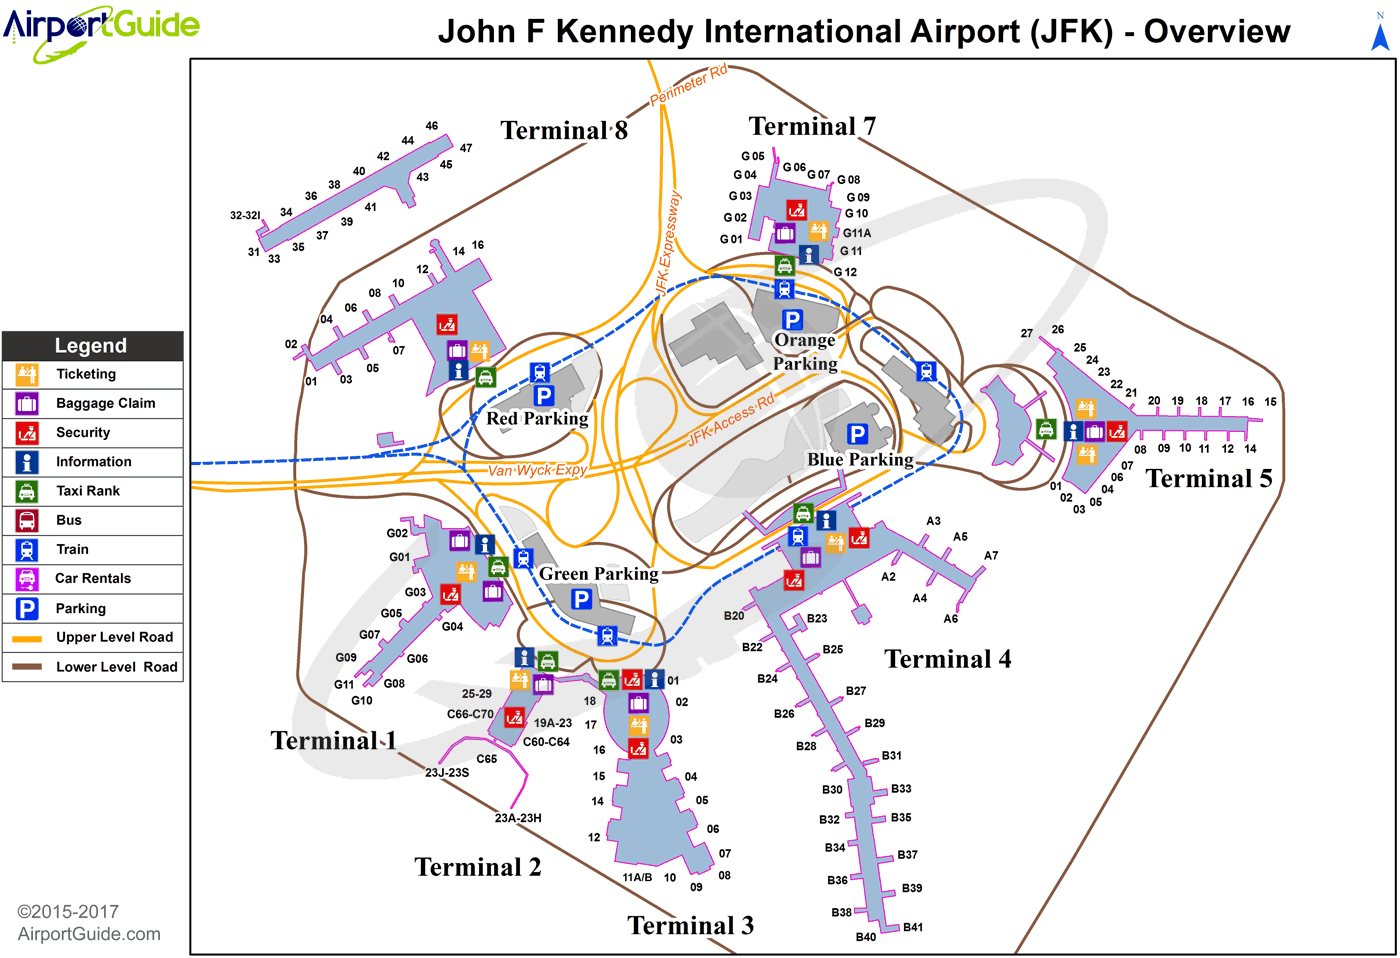 Jfk Airport Map New York   John F Kennedy International (JFK) Airport Terminal  Jfk Airport Map